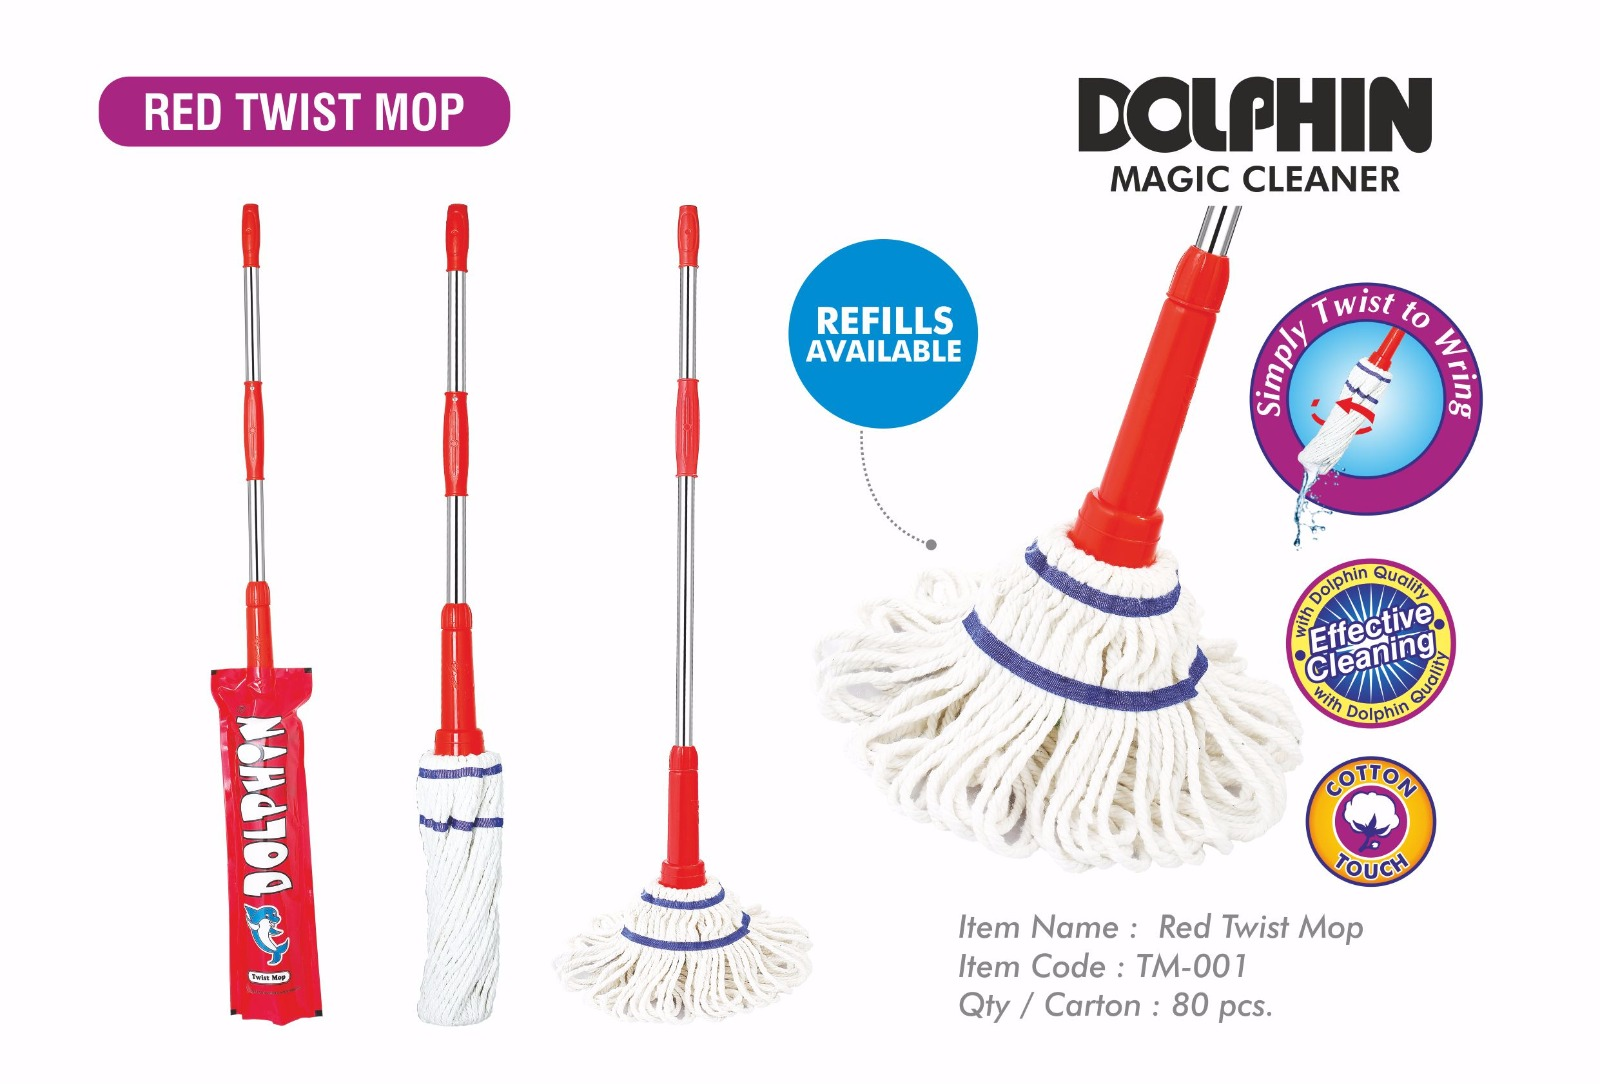 Red twist mop TM-002